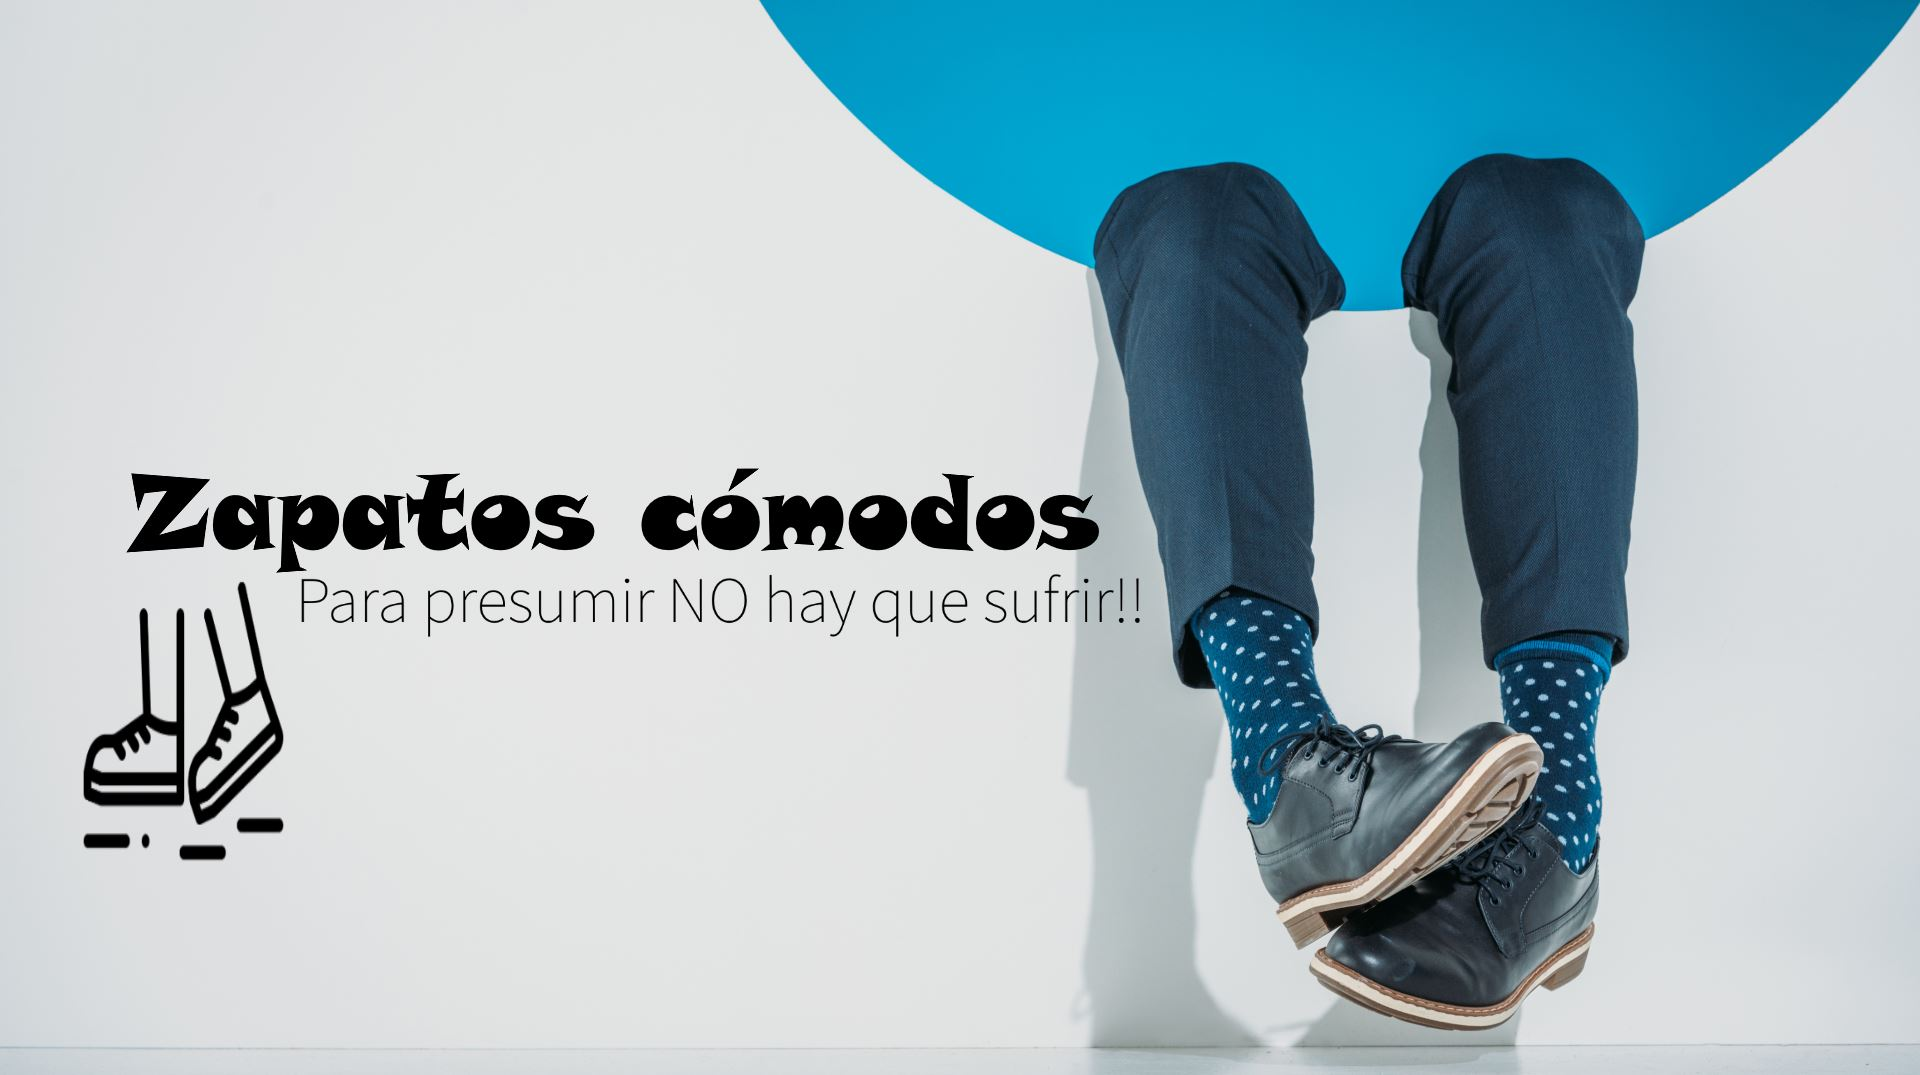 Zapatos cómodos